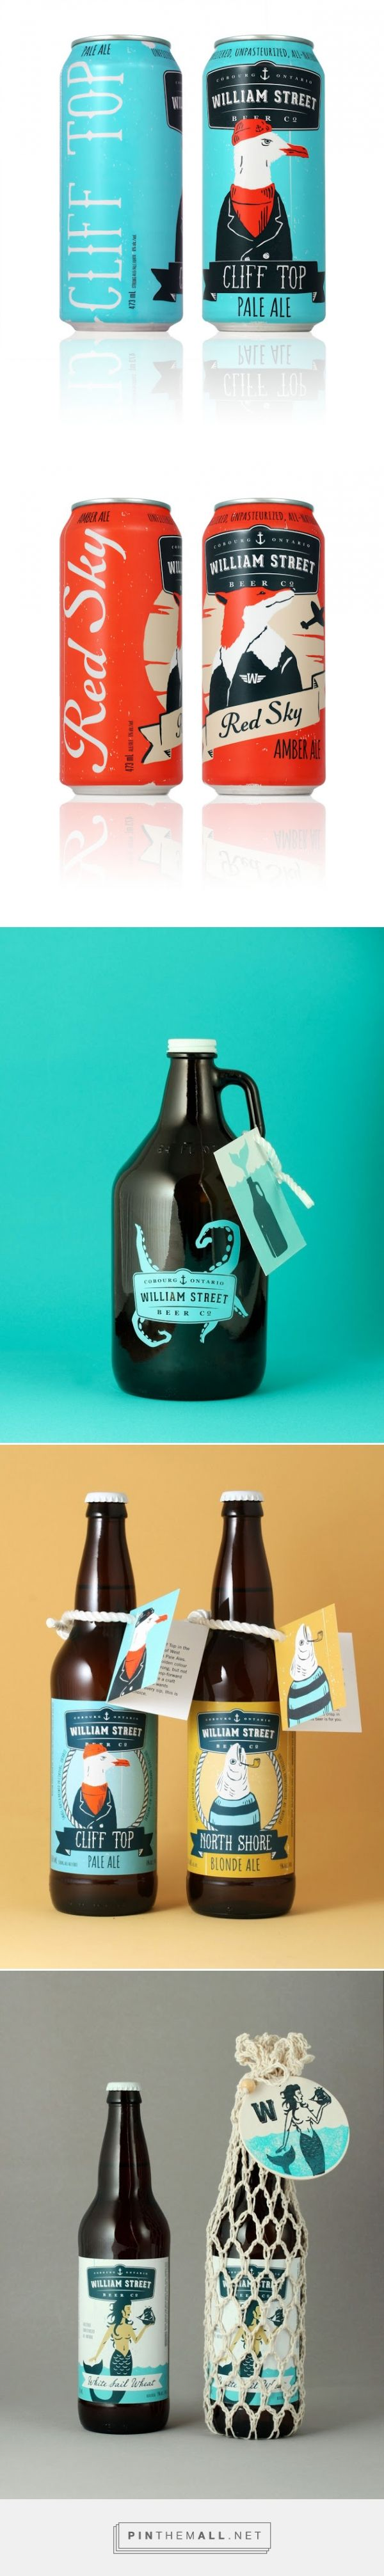 William Street Beer Co. packaging designed by Freshly Packaged - http://www.packagingoftheworld.com/2015/09/william-street-beer-co.html